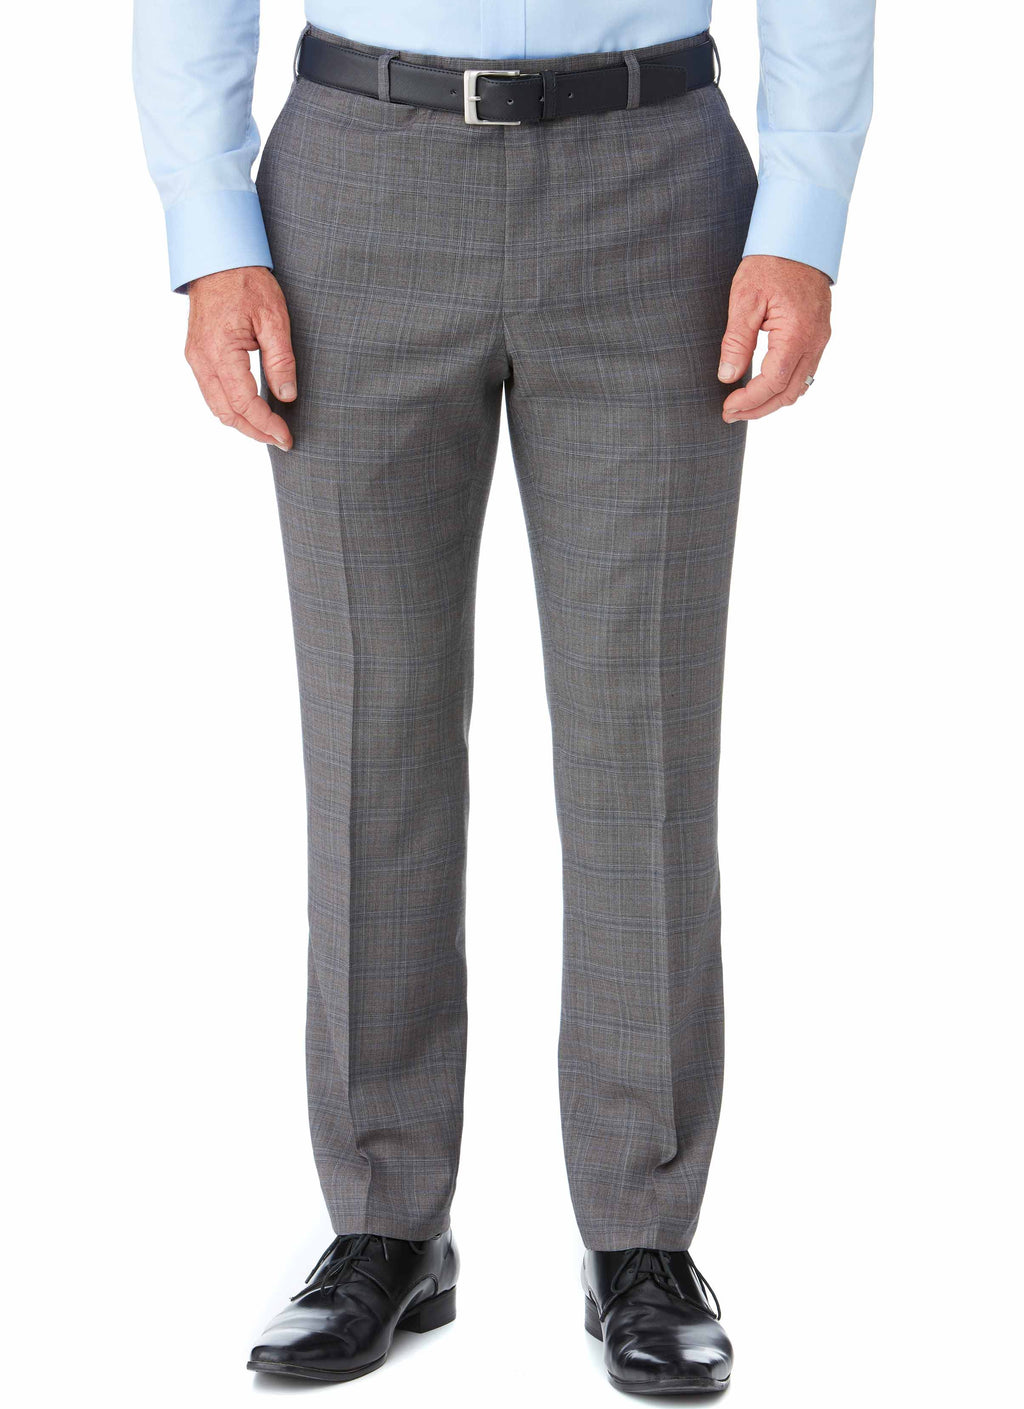 GISBORNE CONTEMPORARY FIT TROUSER - ASH CHECK